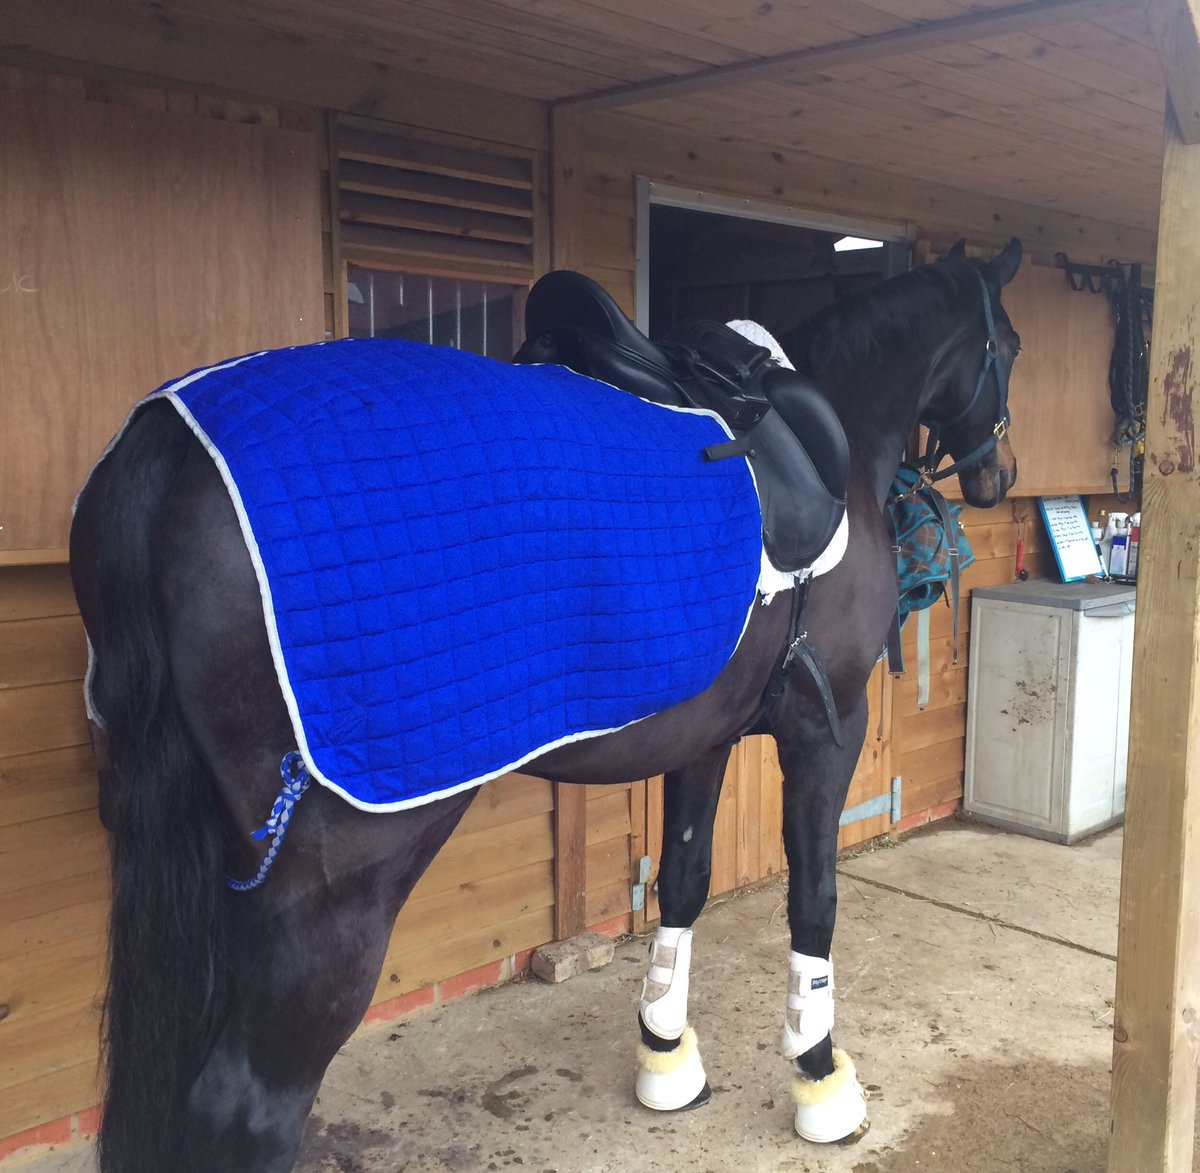 Tania Grantham On Twitter Sam In His Lovely New Thermatex Rug Specially Made To Fit My Monoflap Amerigo From Prosaddles Colours